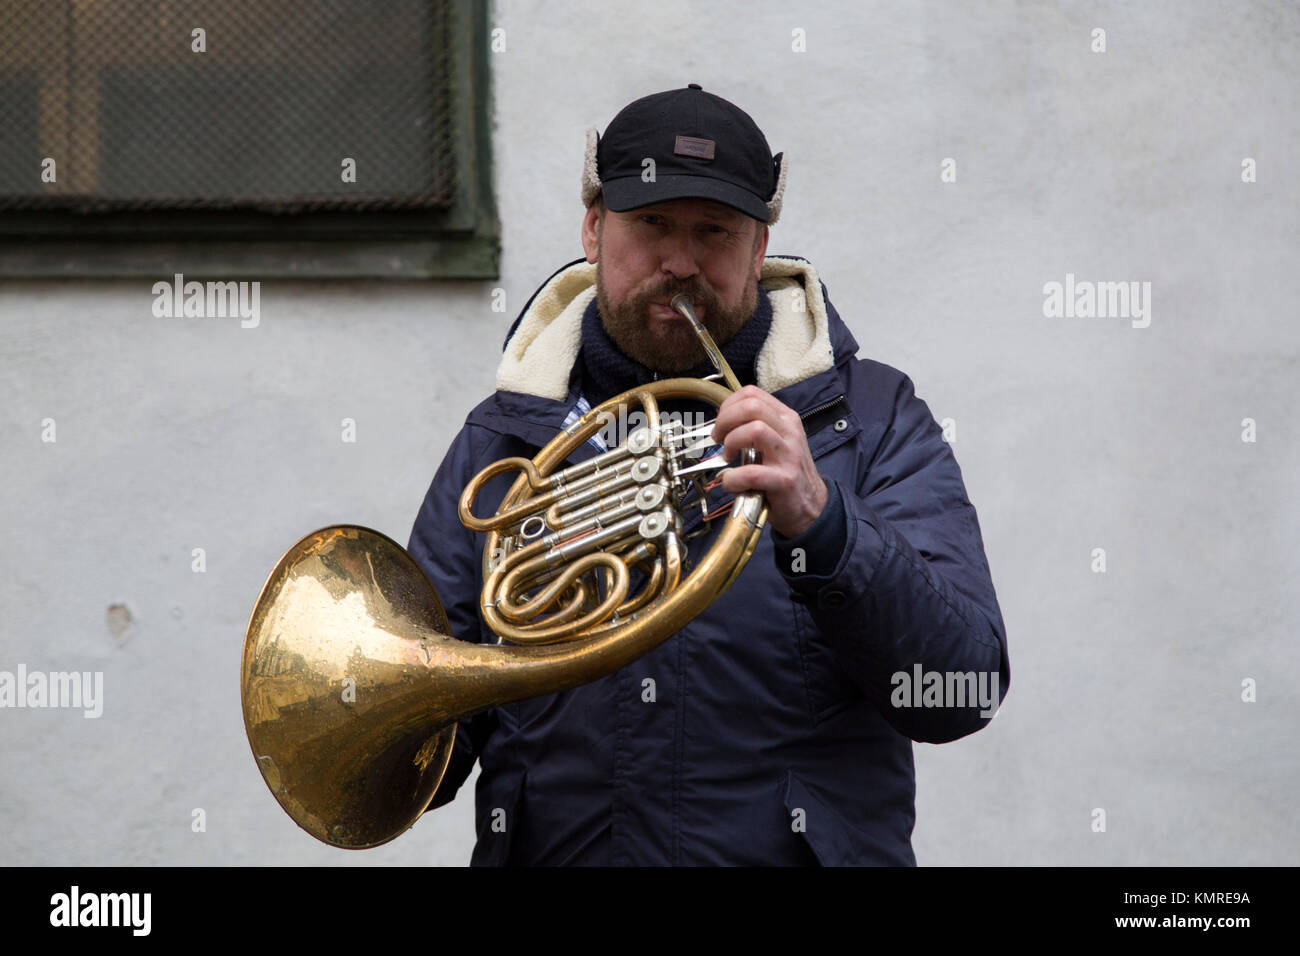 Musician in Riga, Latvia. The man plays the French horn. - Stock Image